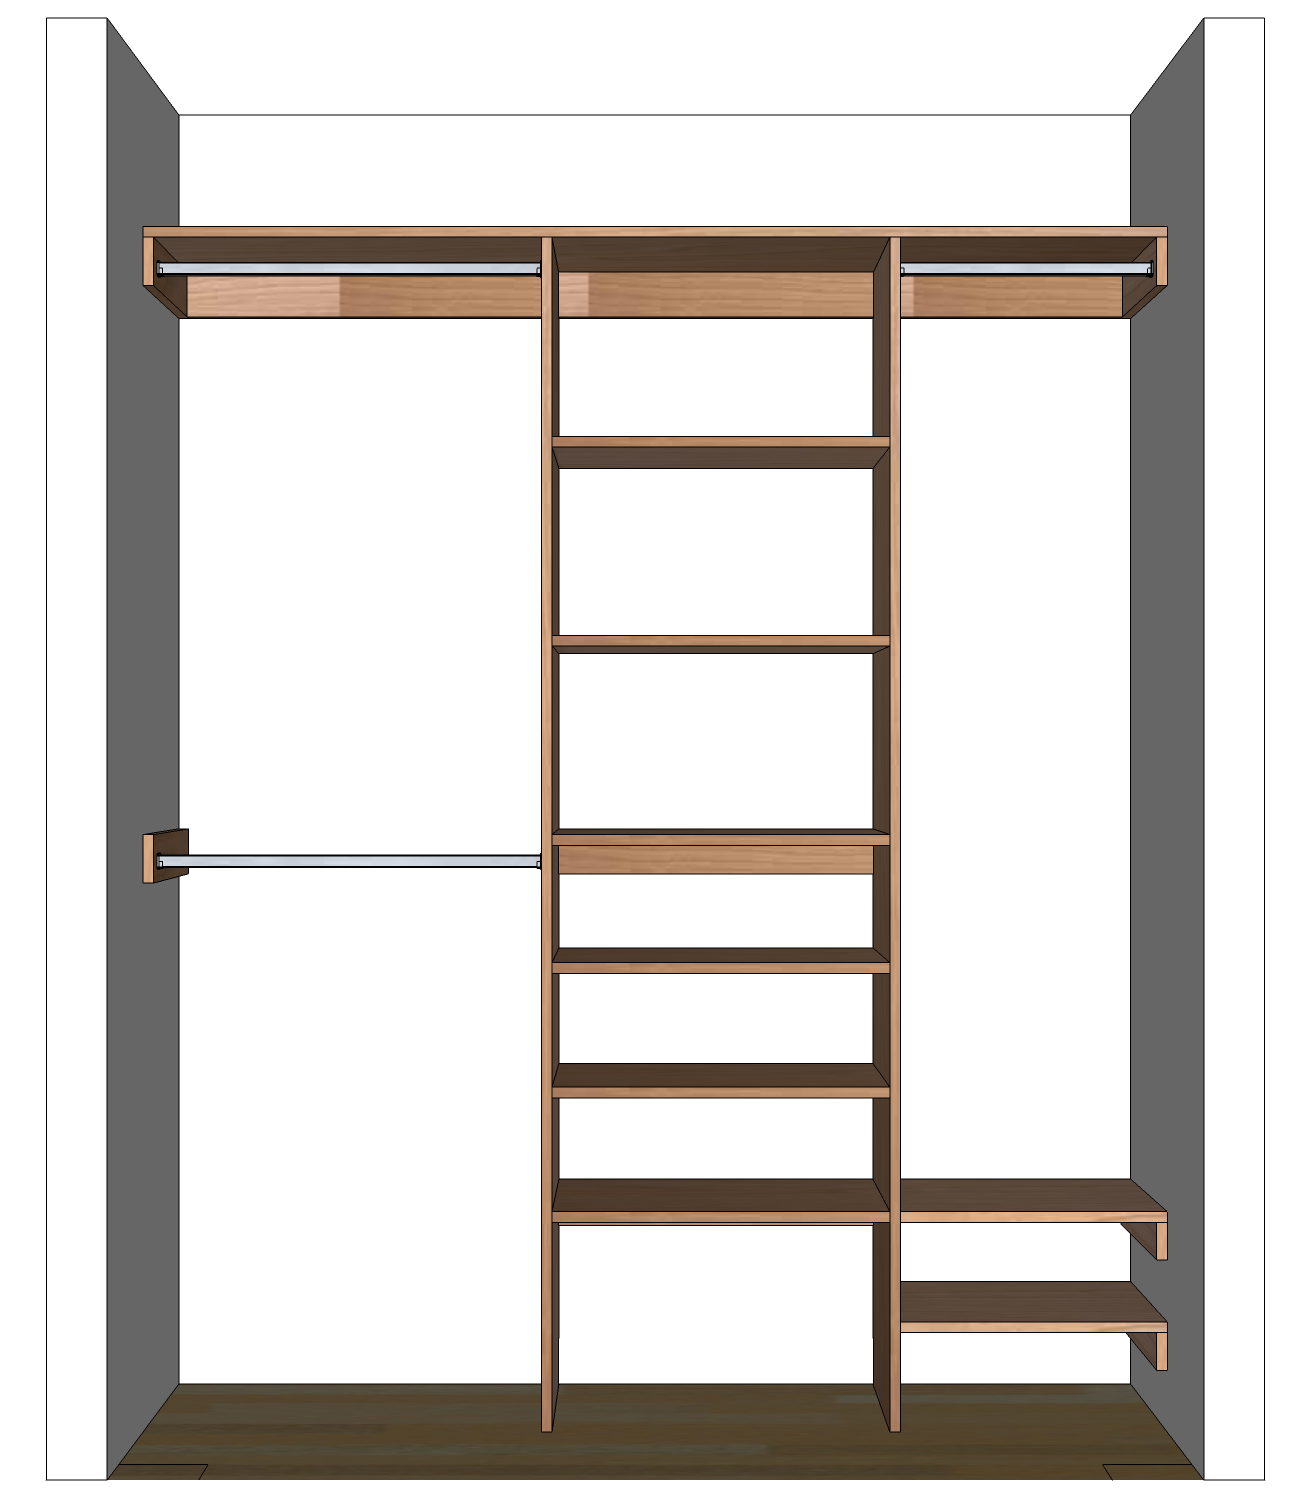 build for furniture shelf drawers shelves units closet clothes capable photo wardrobe size of organizer unit ideas full with drawer